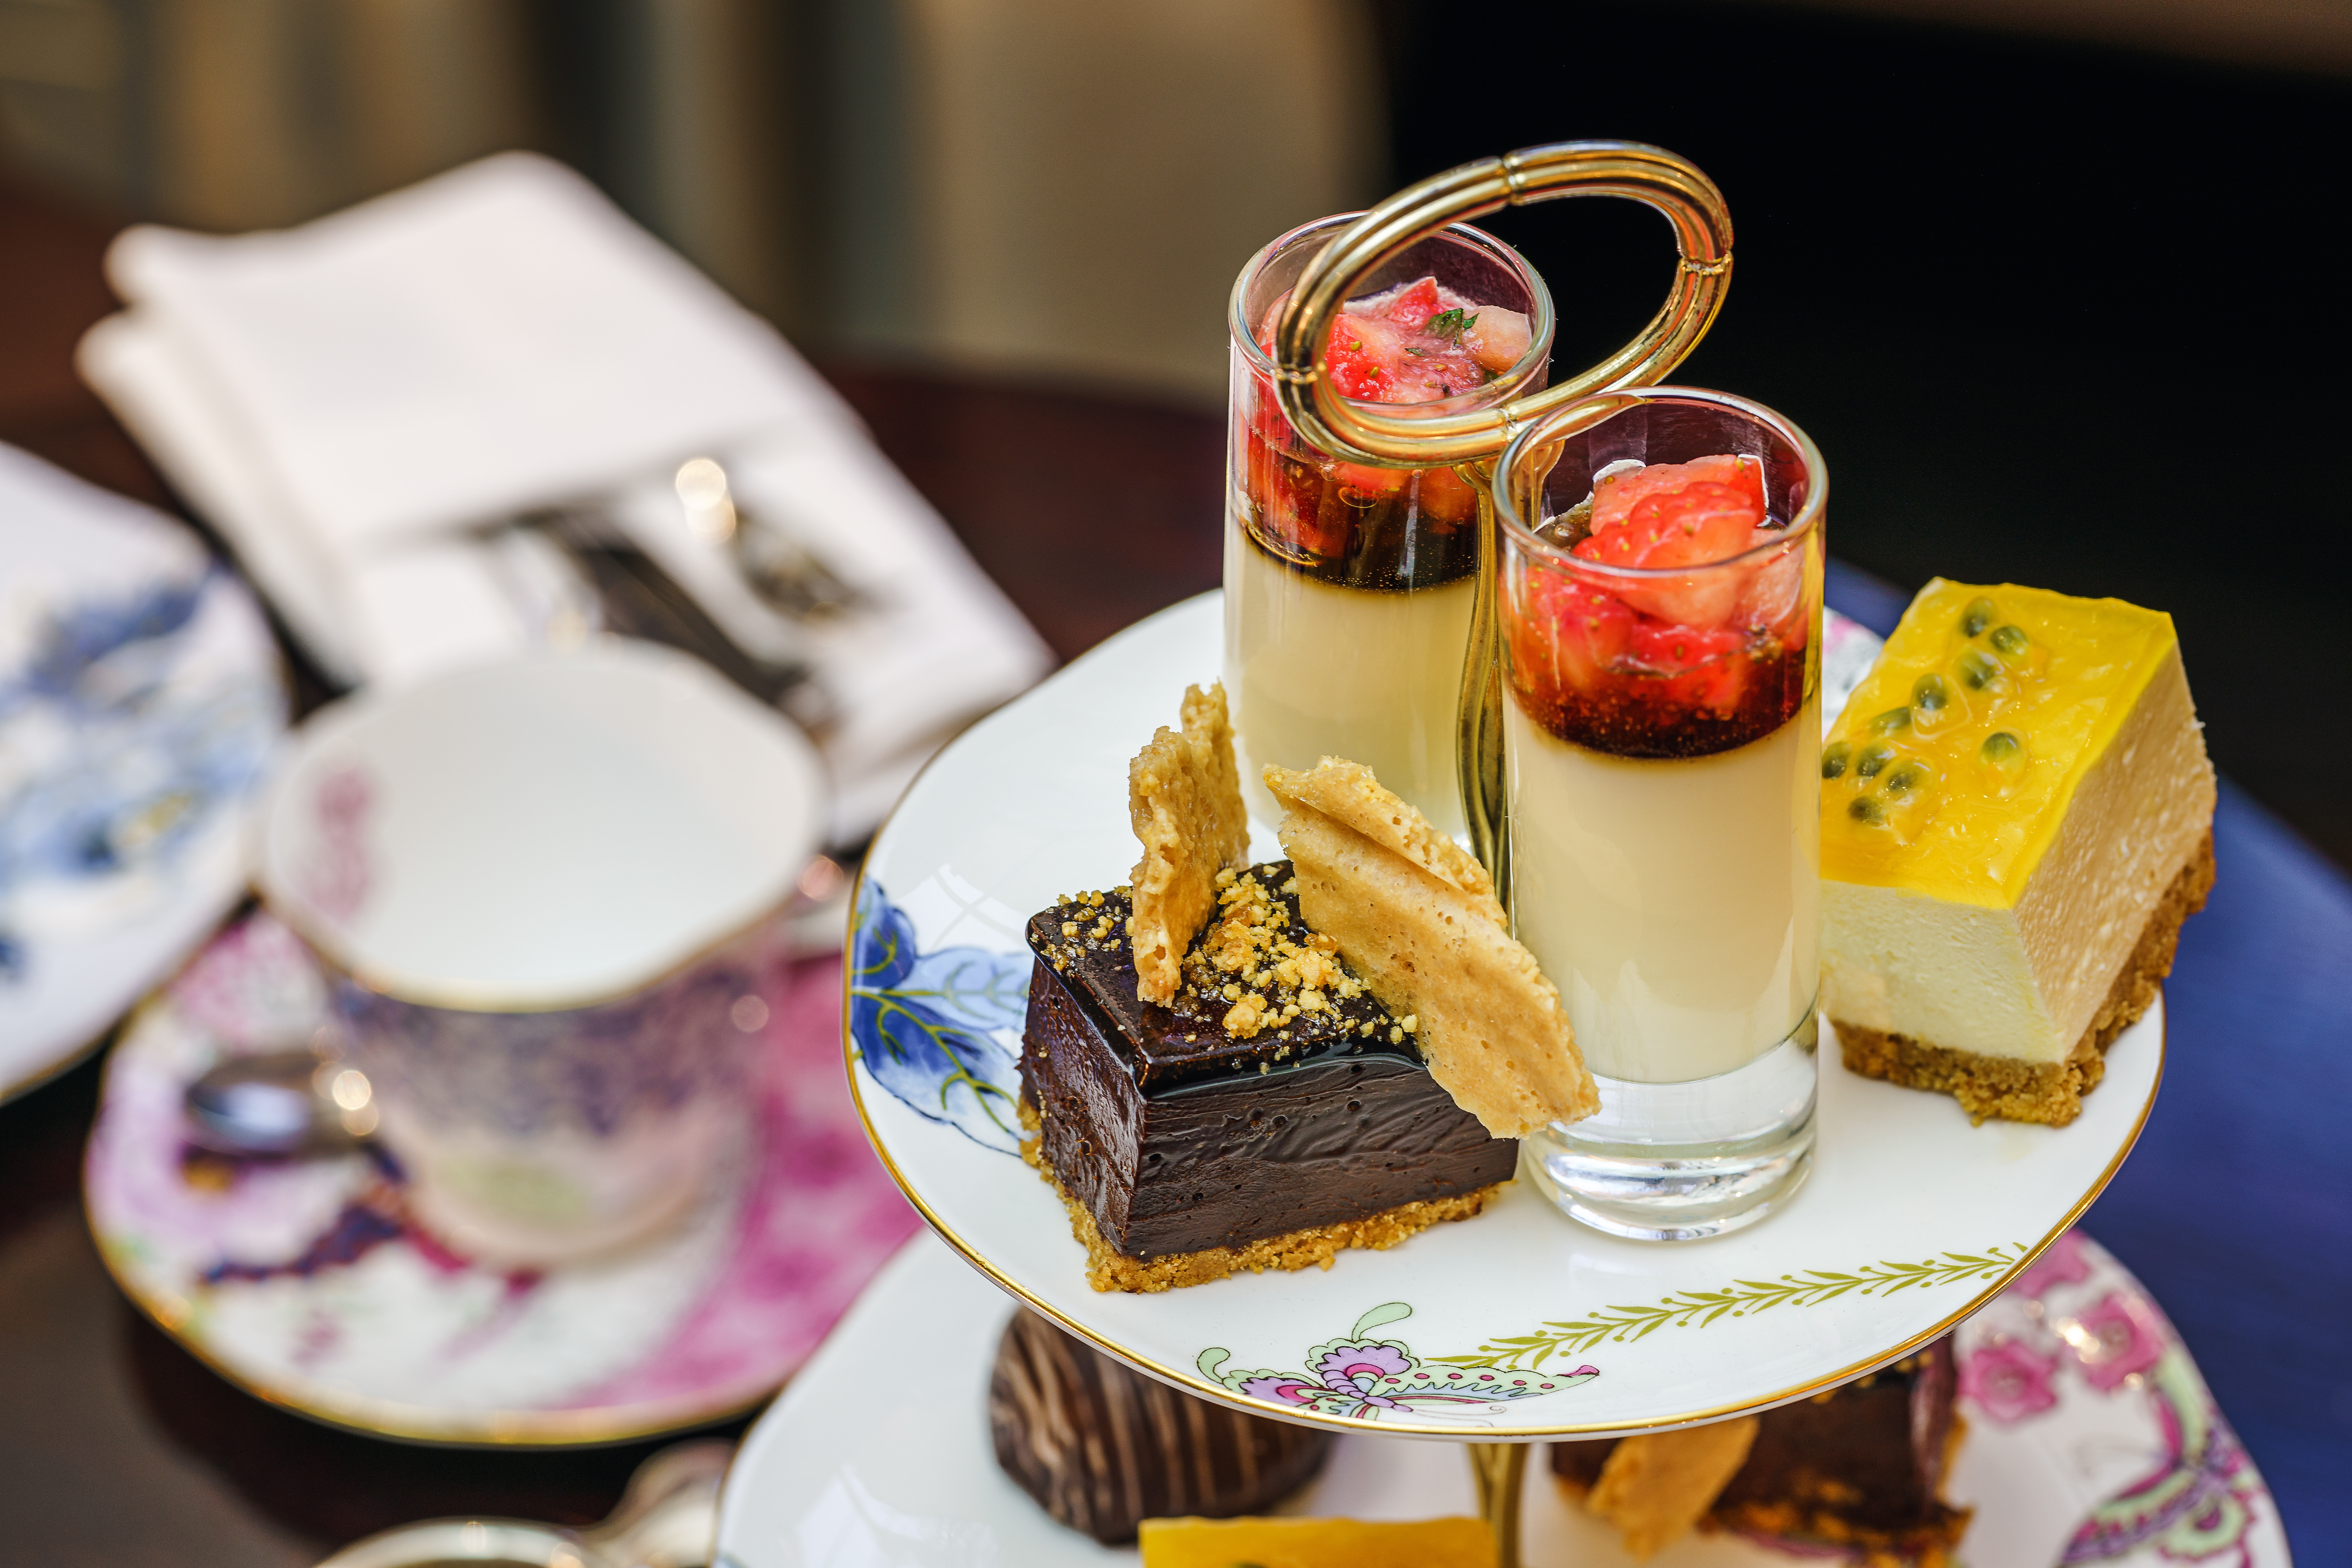 A cup of tea and two-tiered dessert tray